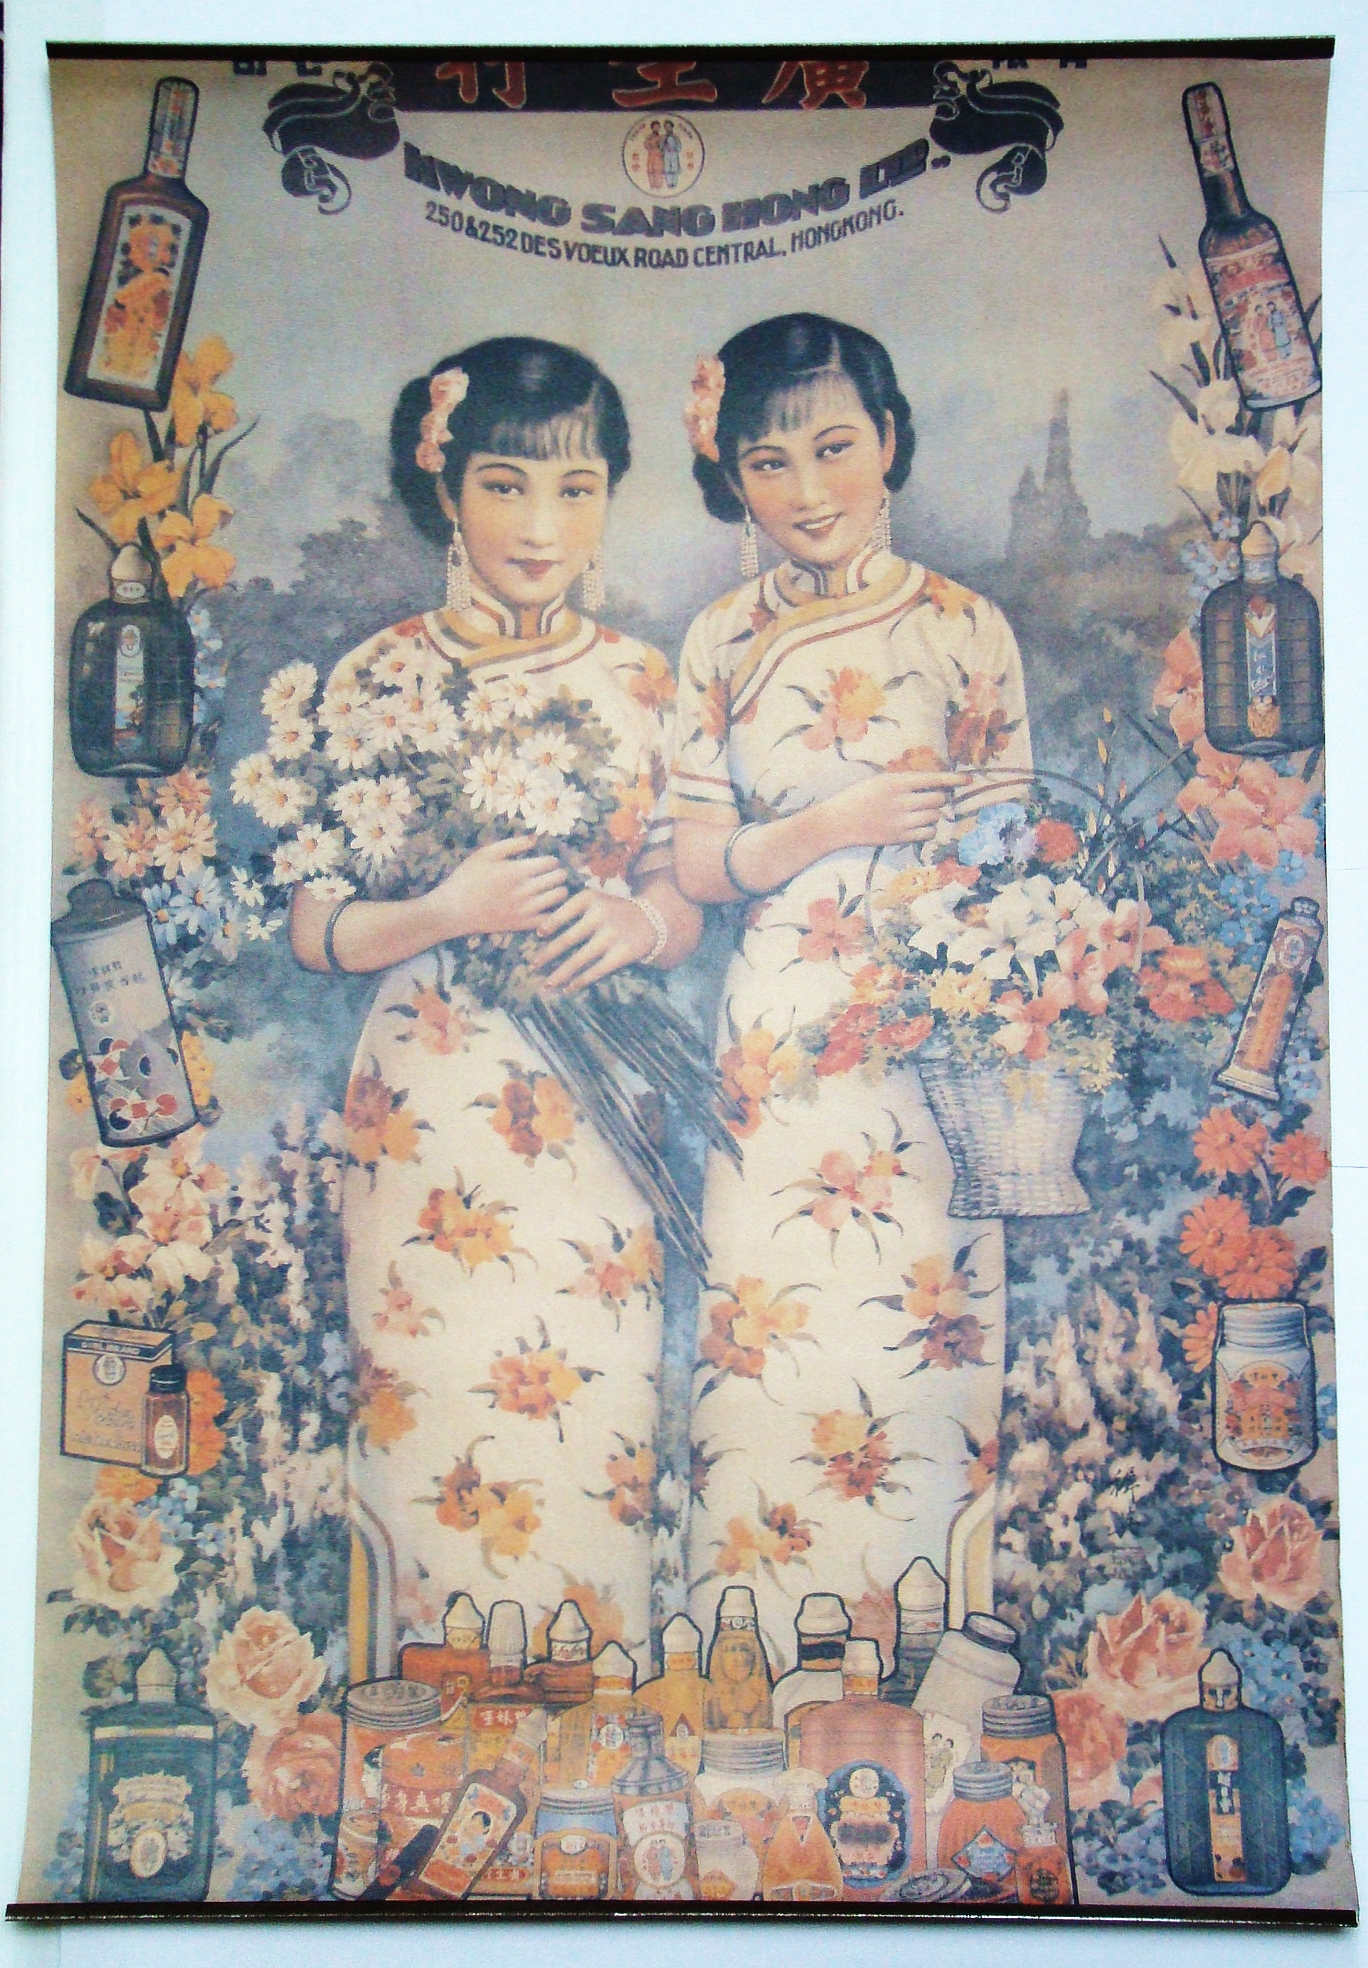 Chinese / Shanghai Replica Advertising Poster For Kwong Sang Hong, Ltd. (Hong Kong) Toiletries for Women Unknown, Artist Very Good Appears to be a 1970s or 1980s replica of the pre-WWII original. Features two lovely young ladies in long cream floral-illustrated dresses surrounded